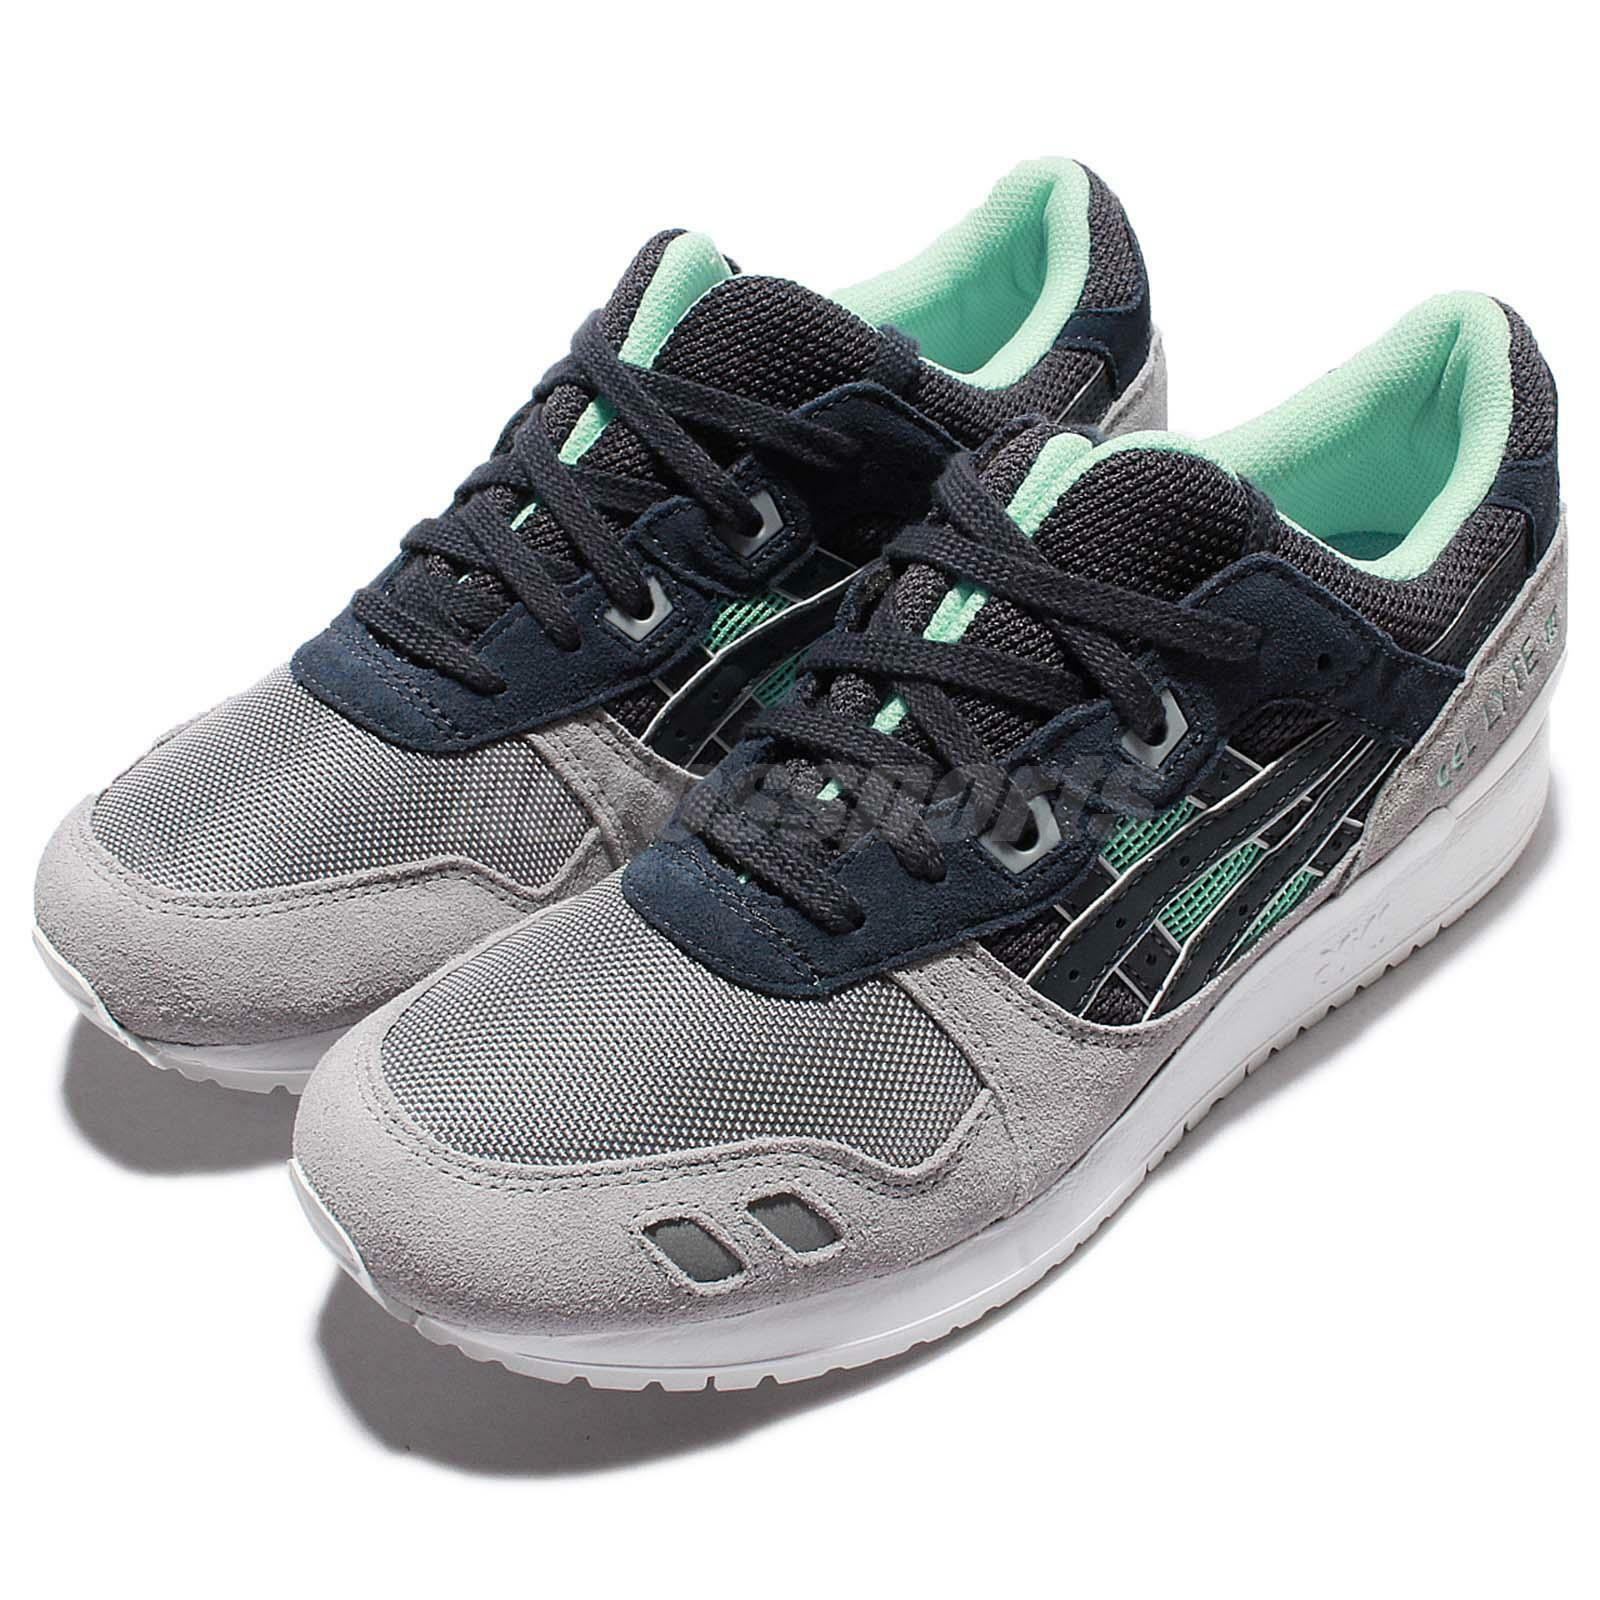 Asics Tiger Gel-Lyte III 3 India Ink gris Mens Retro Running zapatos H6X2L-5050